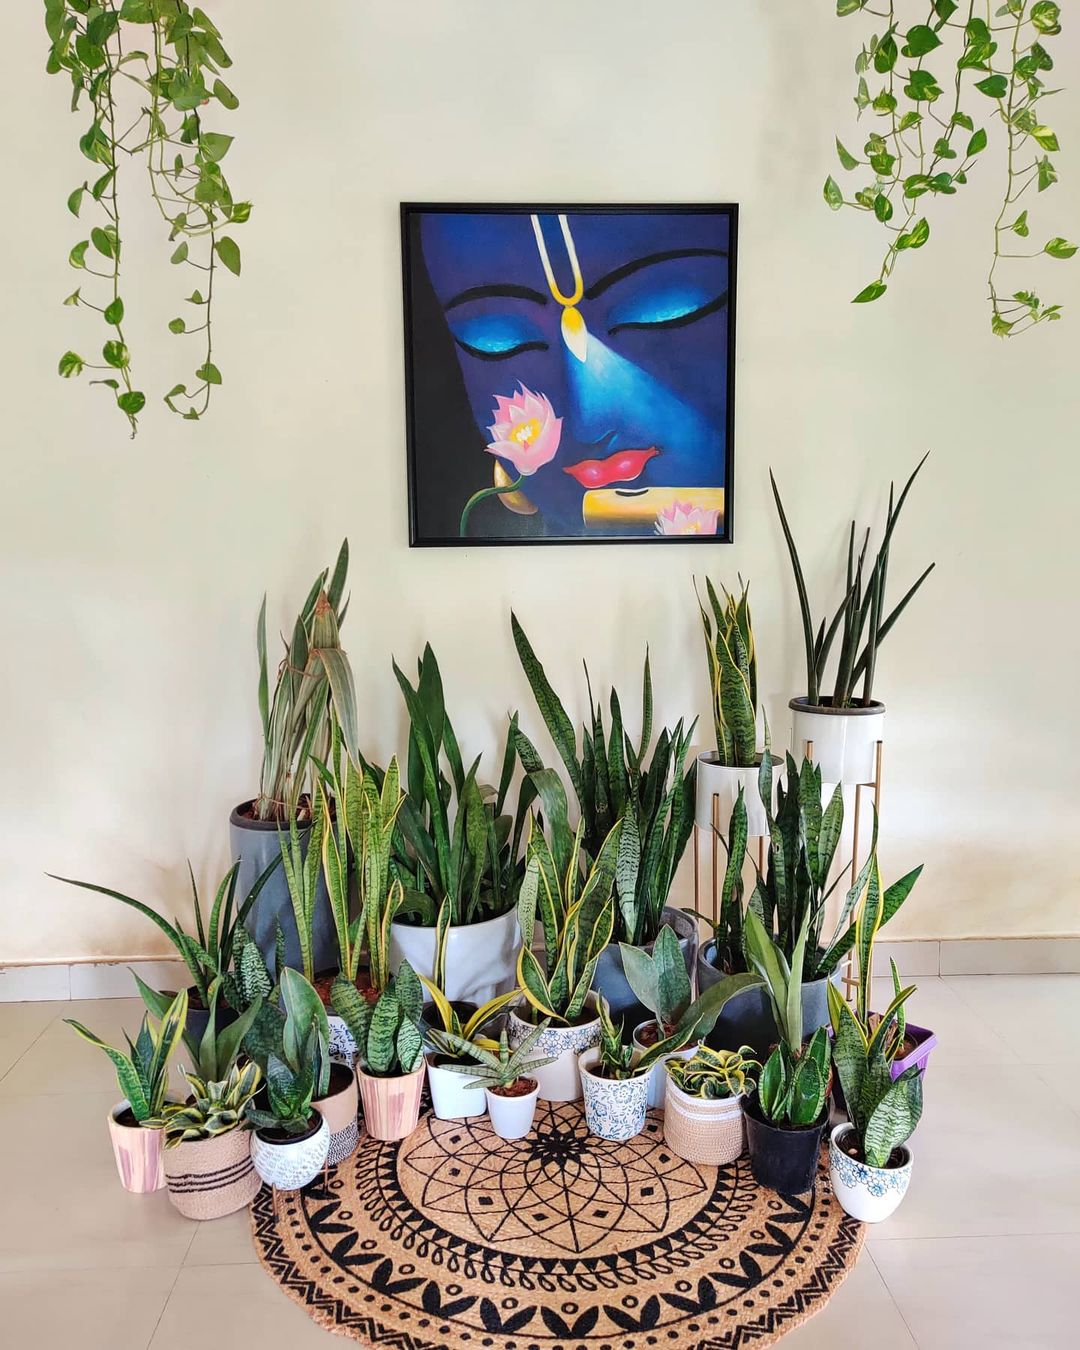 a group of snake plants